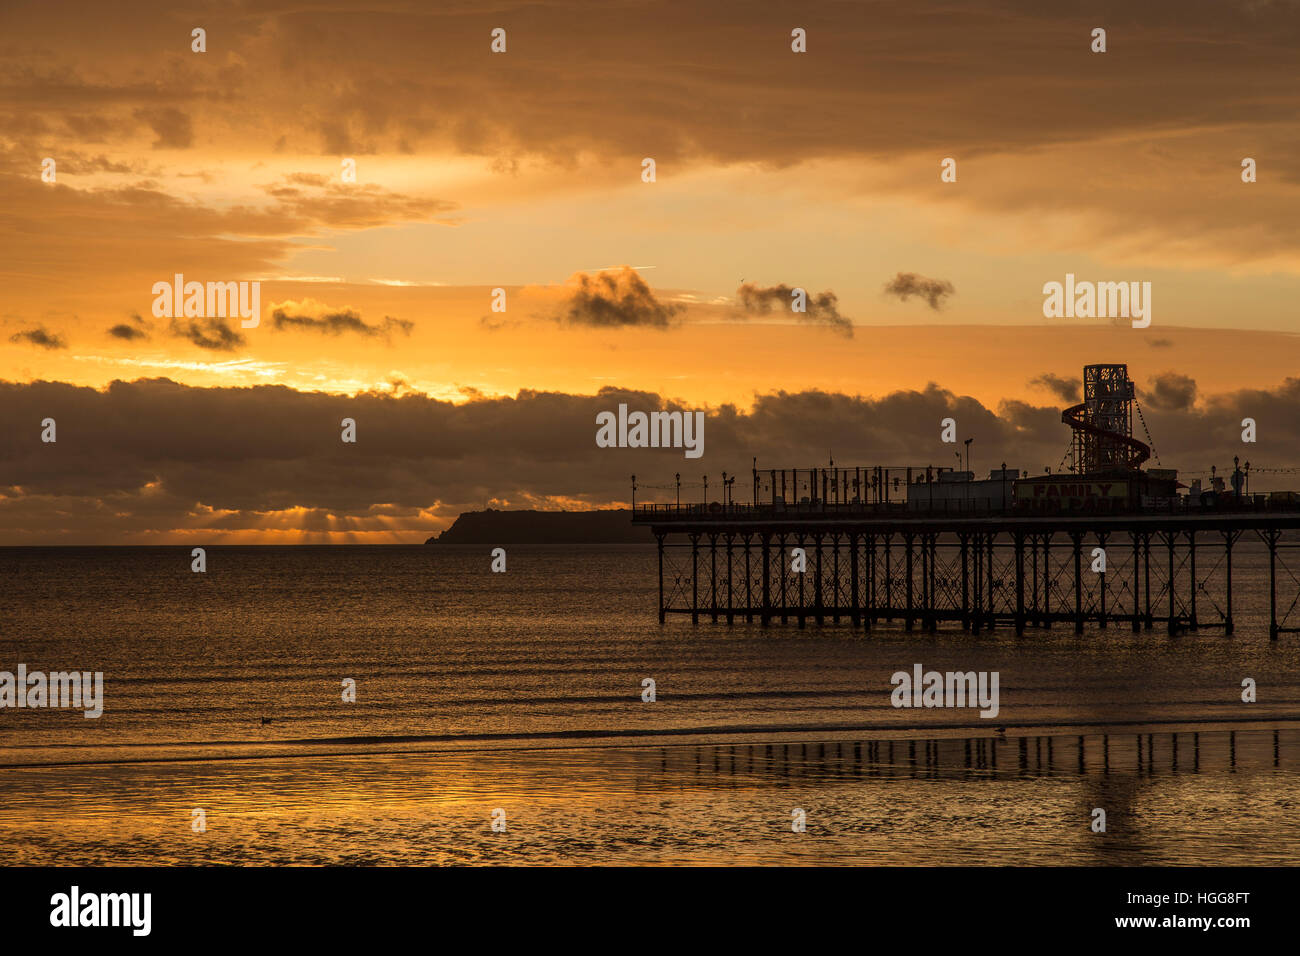 paignton pier with sunrising, - Stock Image